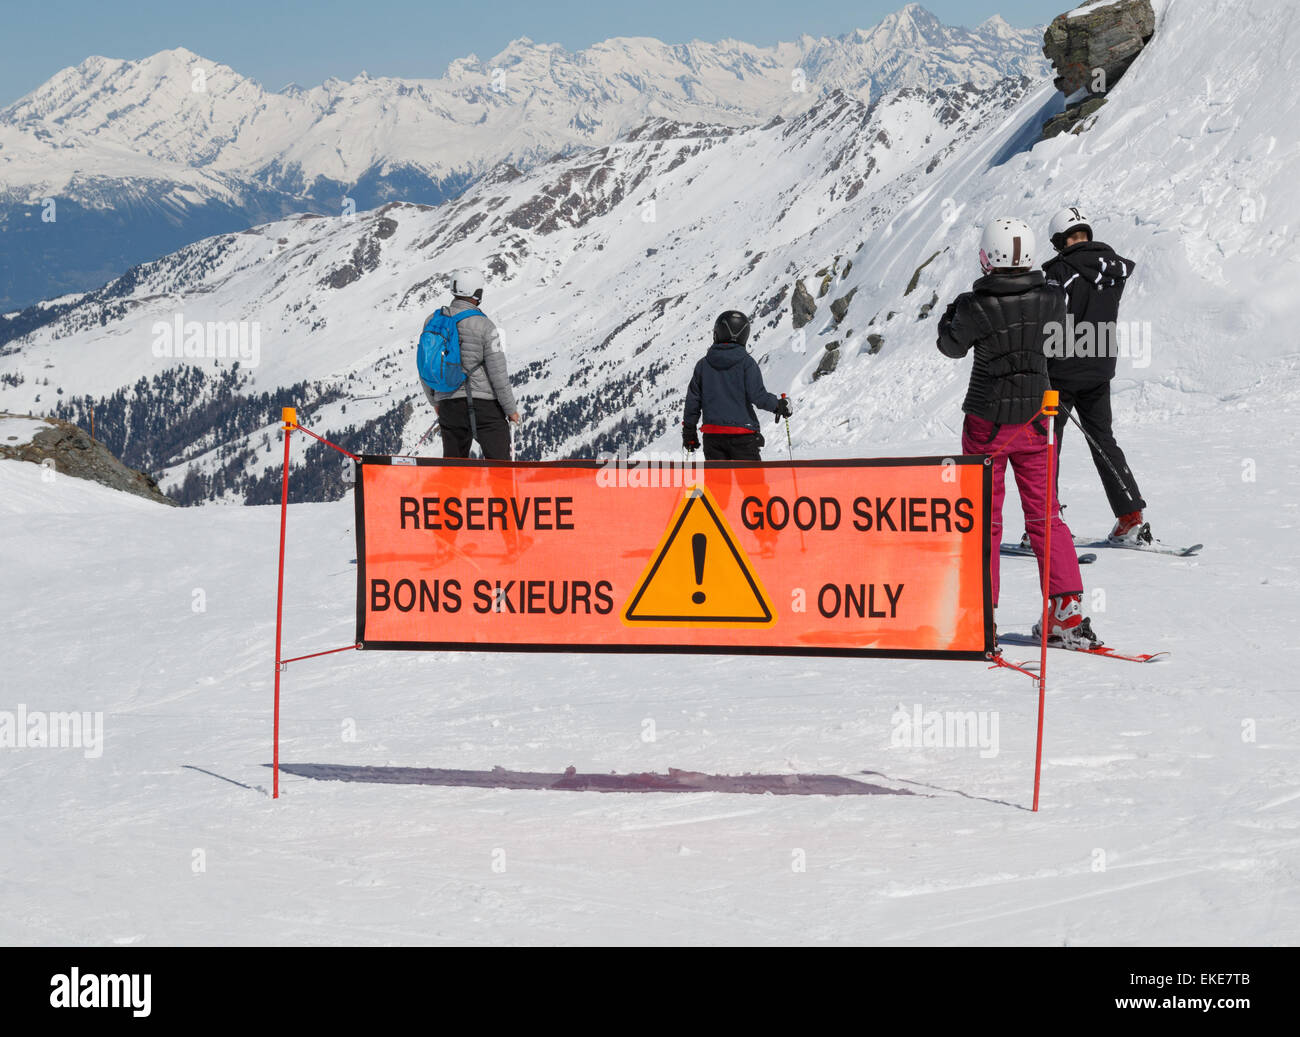 Ski piste sign saying the slope is for good skiers only - Stock Image